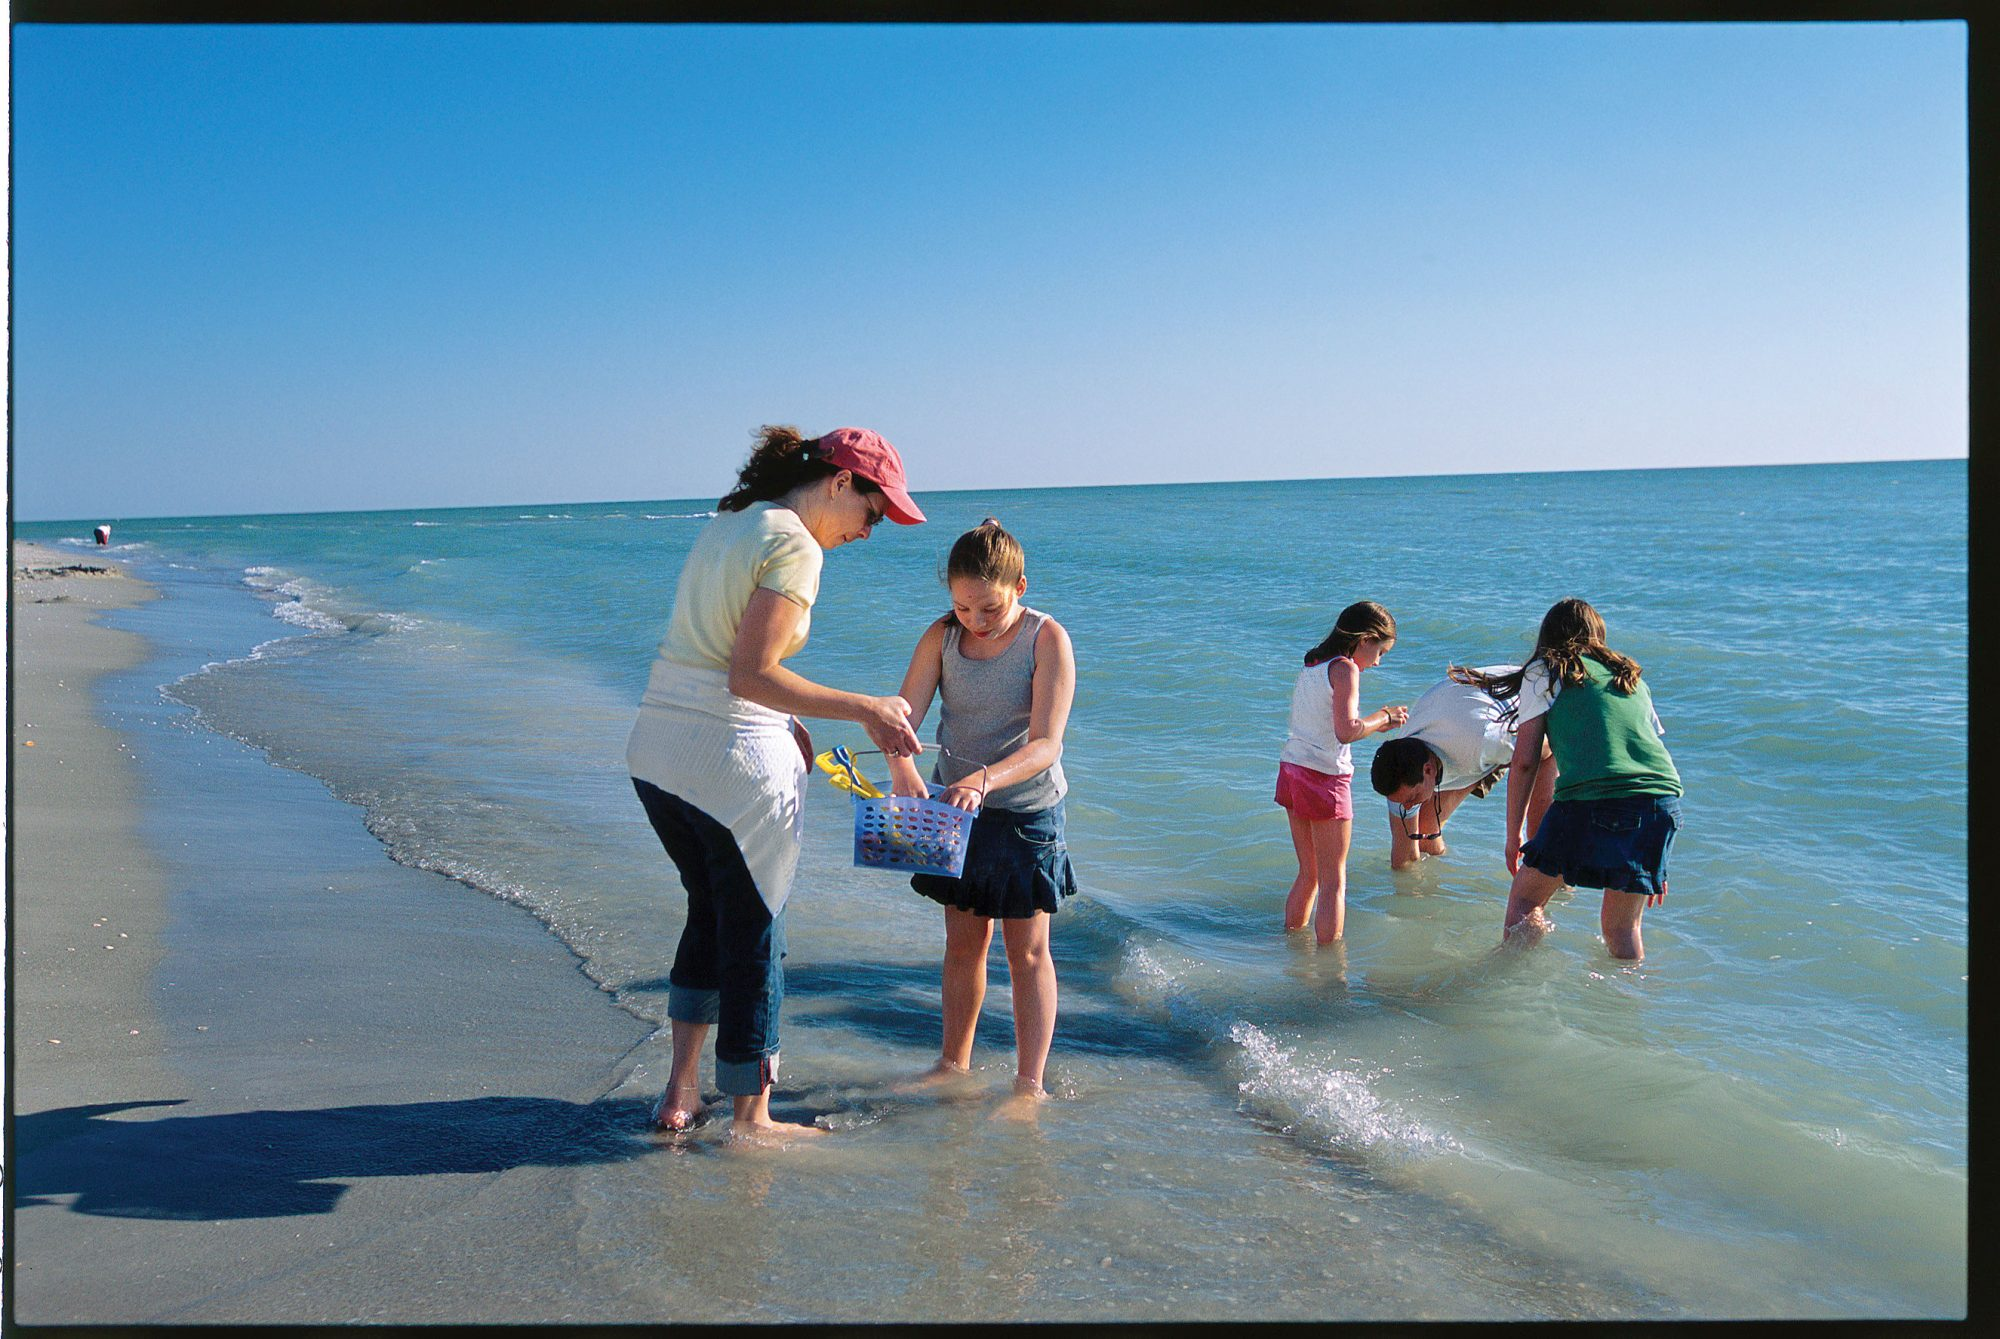 RX_1011 Sanibel Island Beach